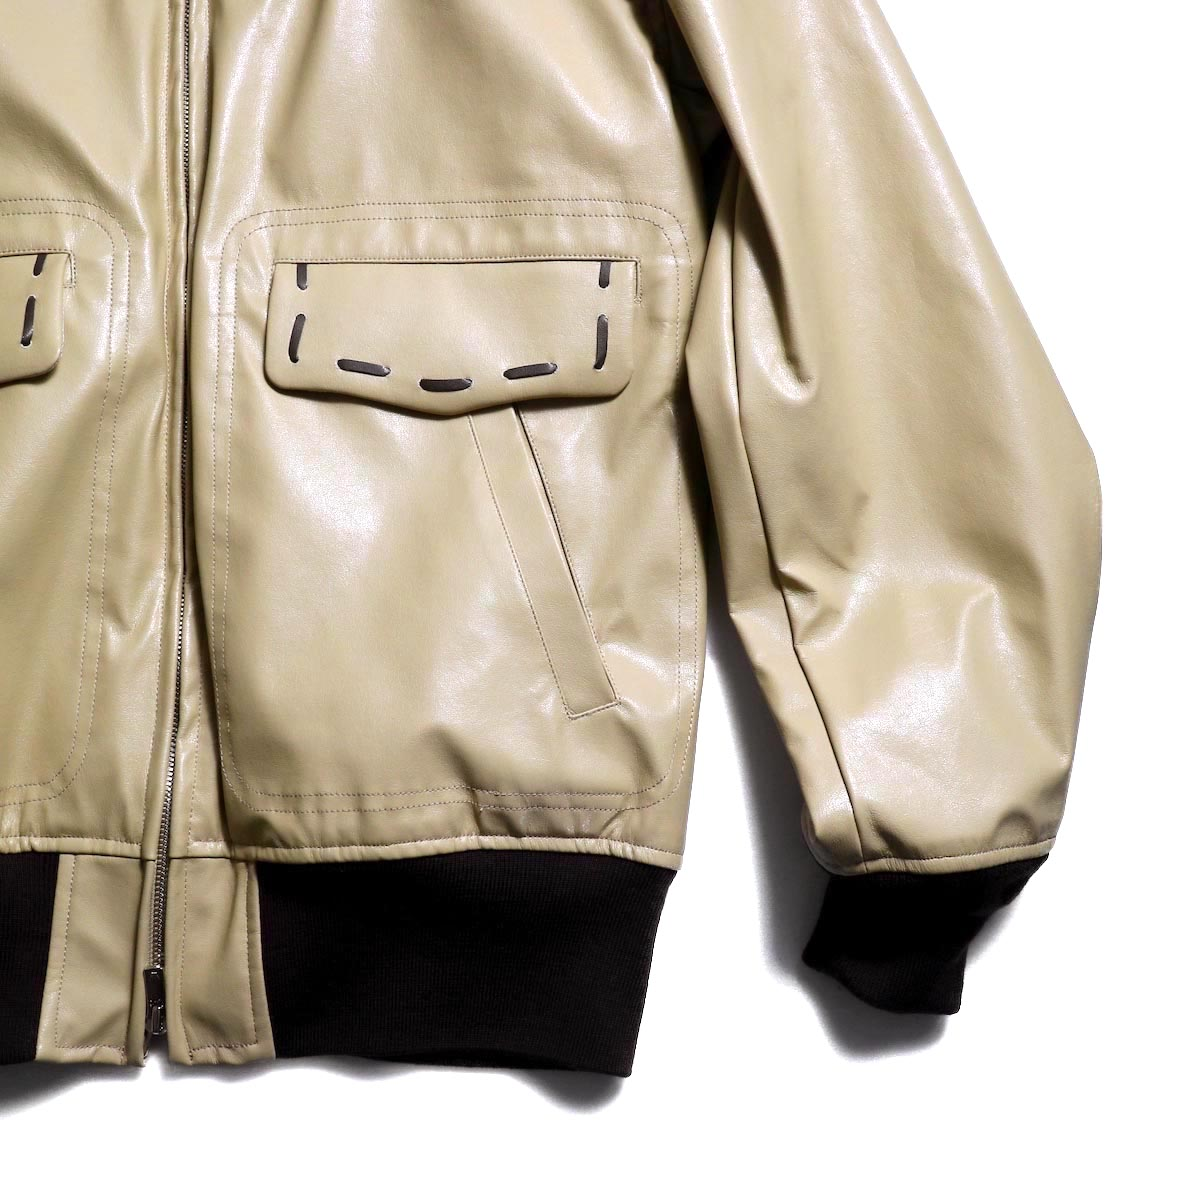 NEEDLES / G-1 Jacket -Synthetic Leather ポケット,リブ